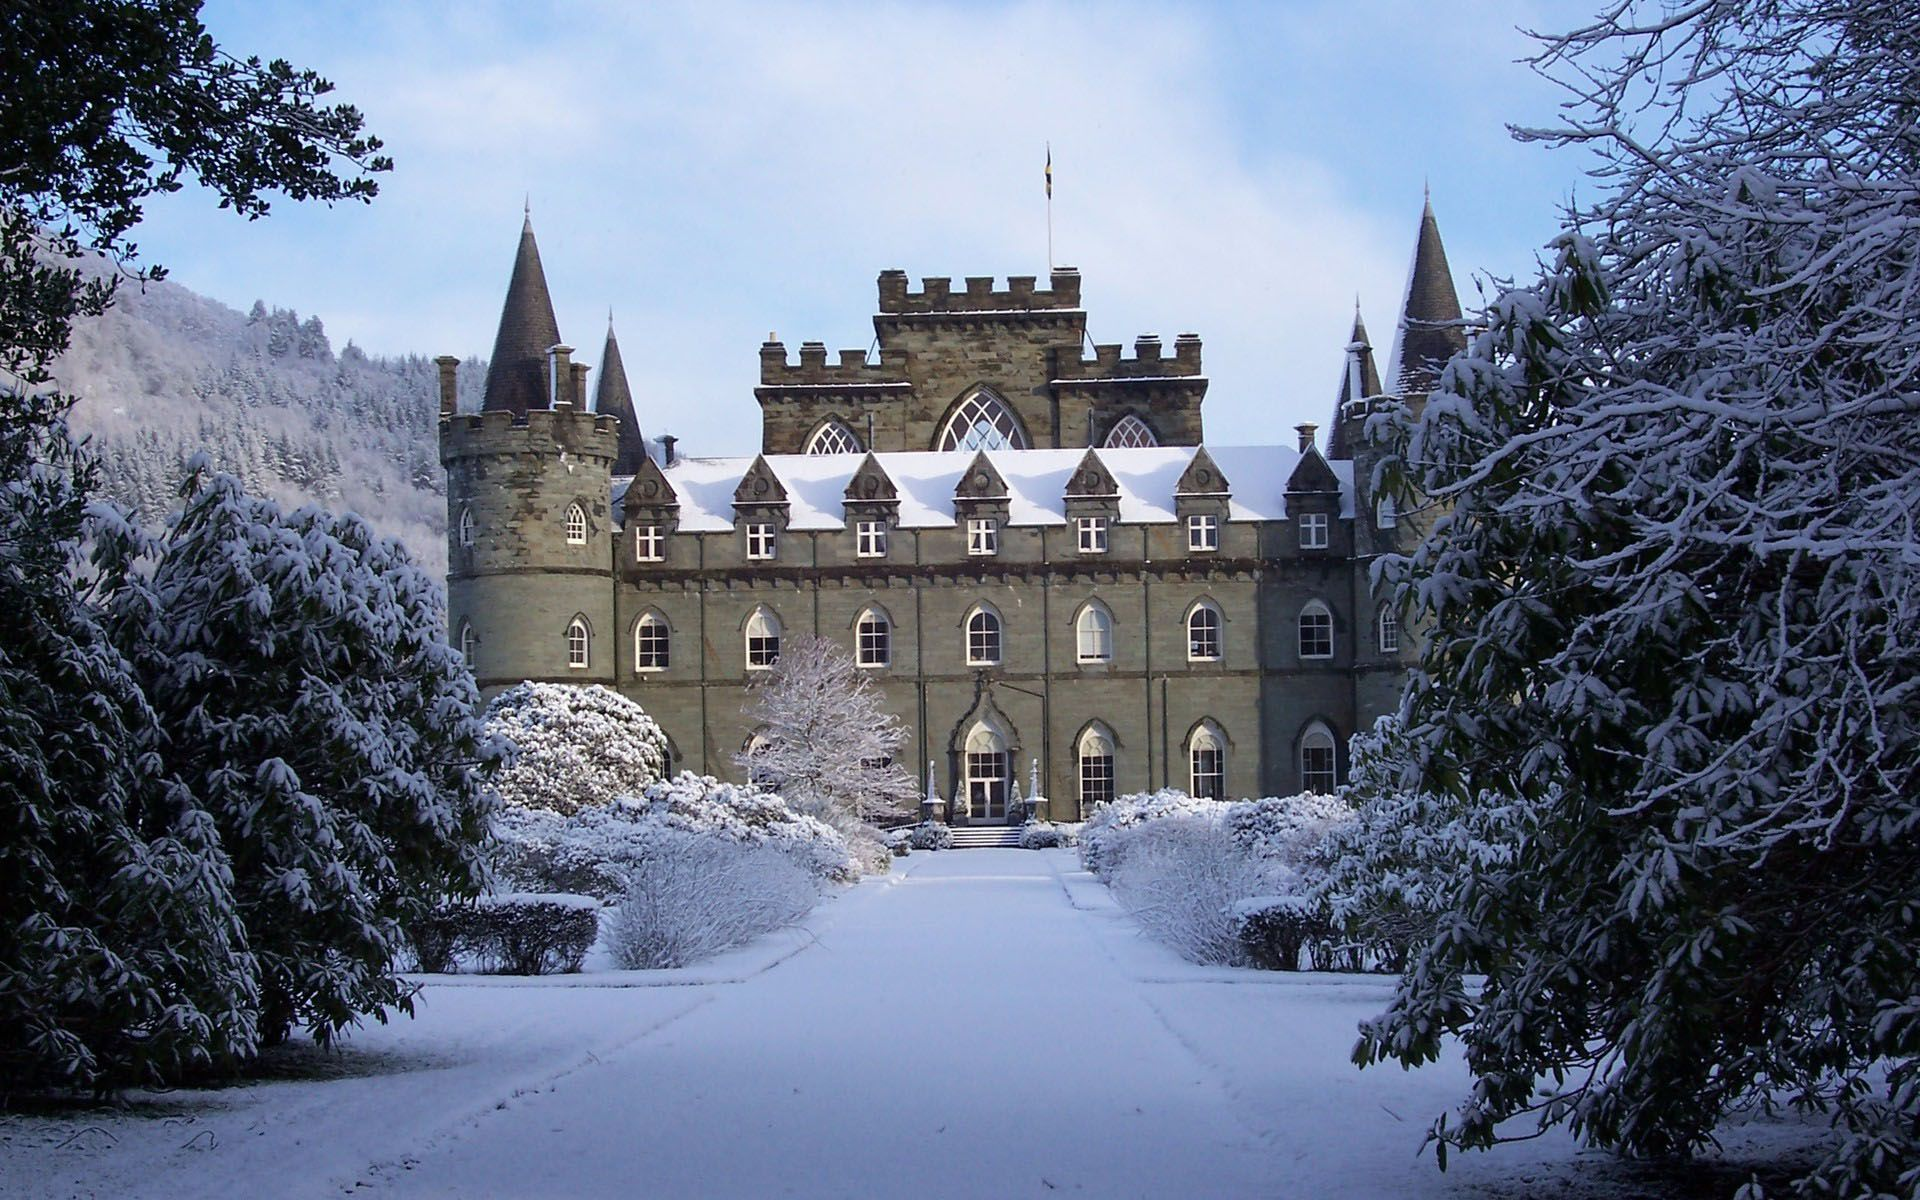 Winter-Scotland-Castle-1377259296.jpg